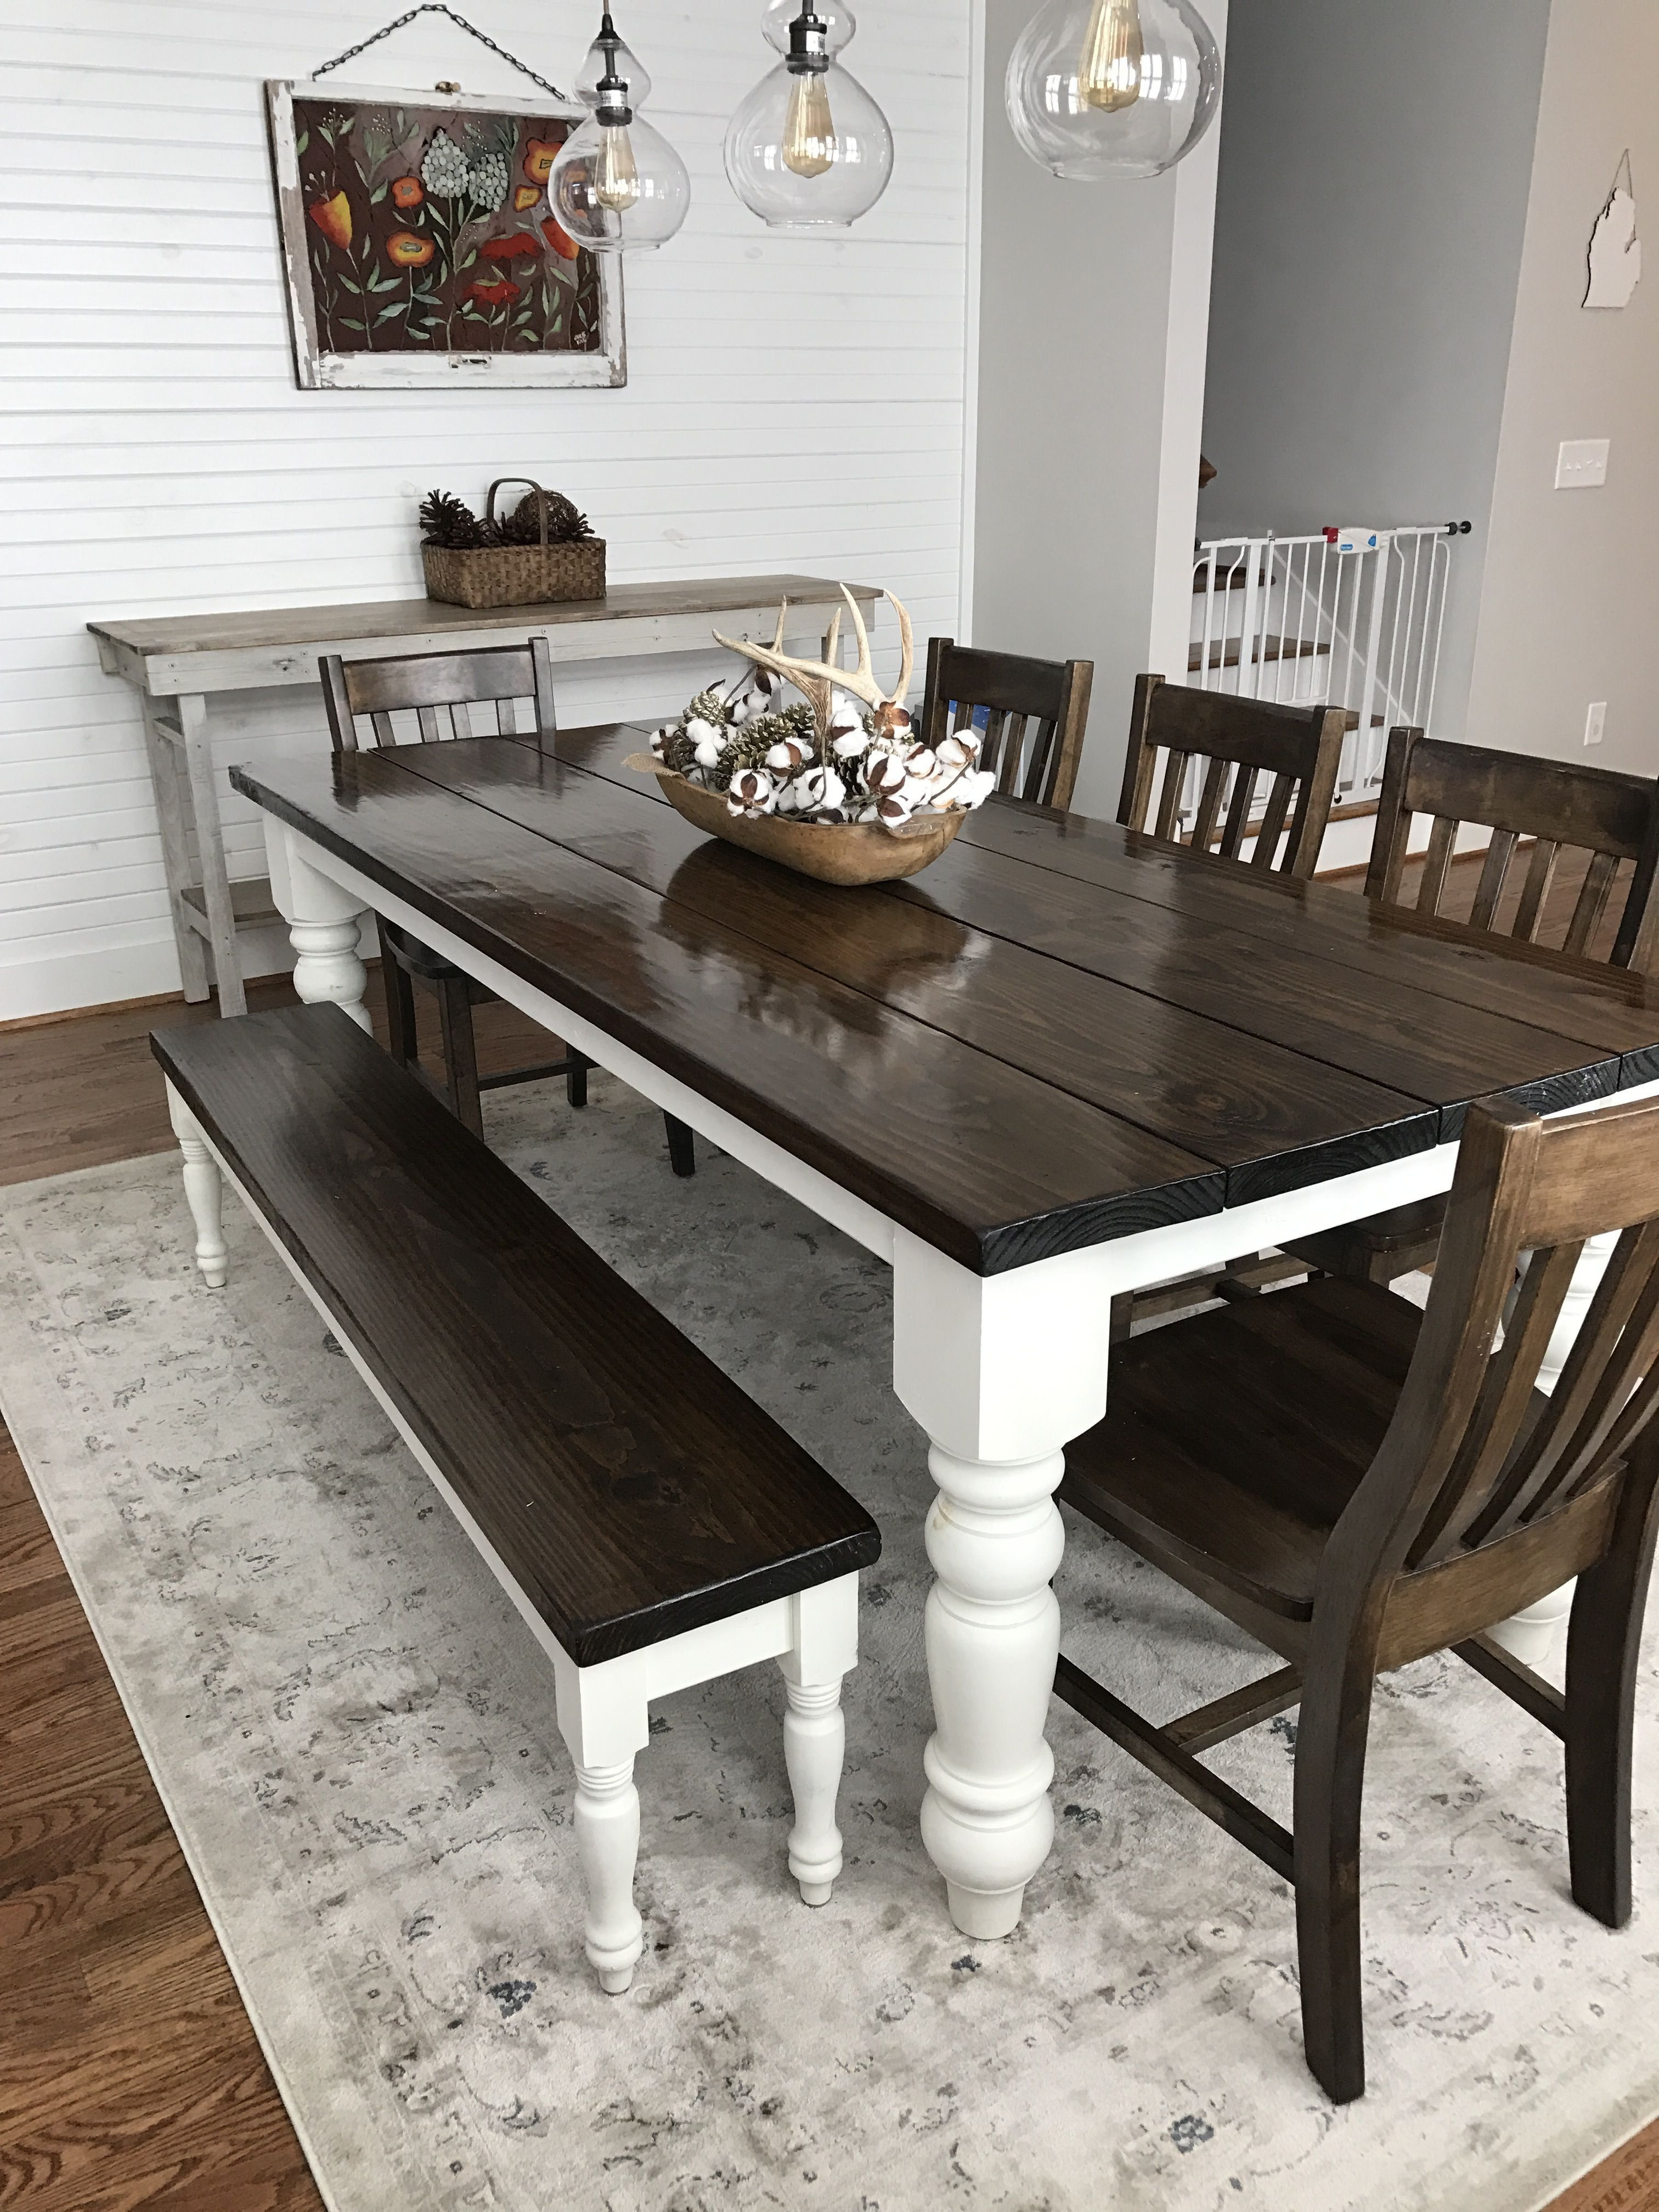 Details about LARGE 7ft FARMHOUSE Table And Chairs Bench